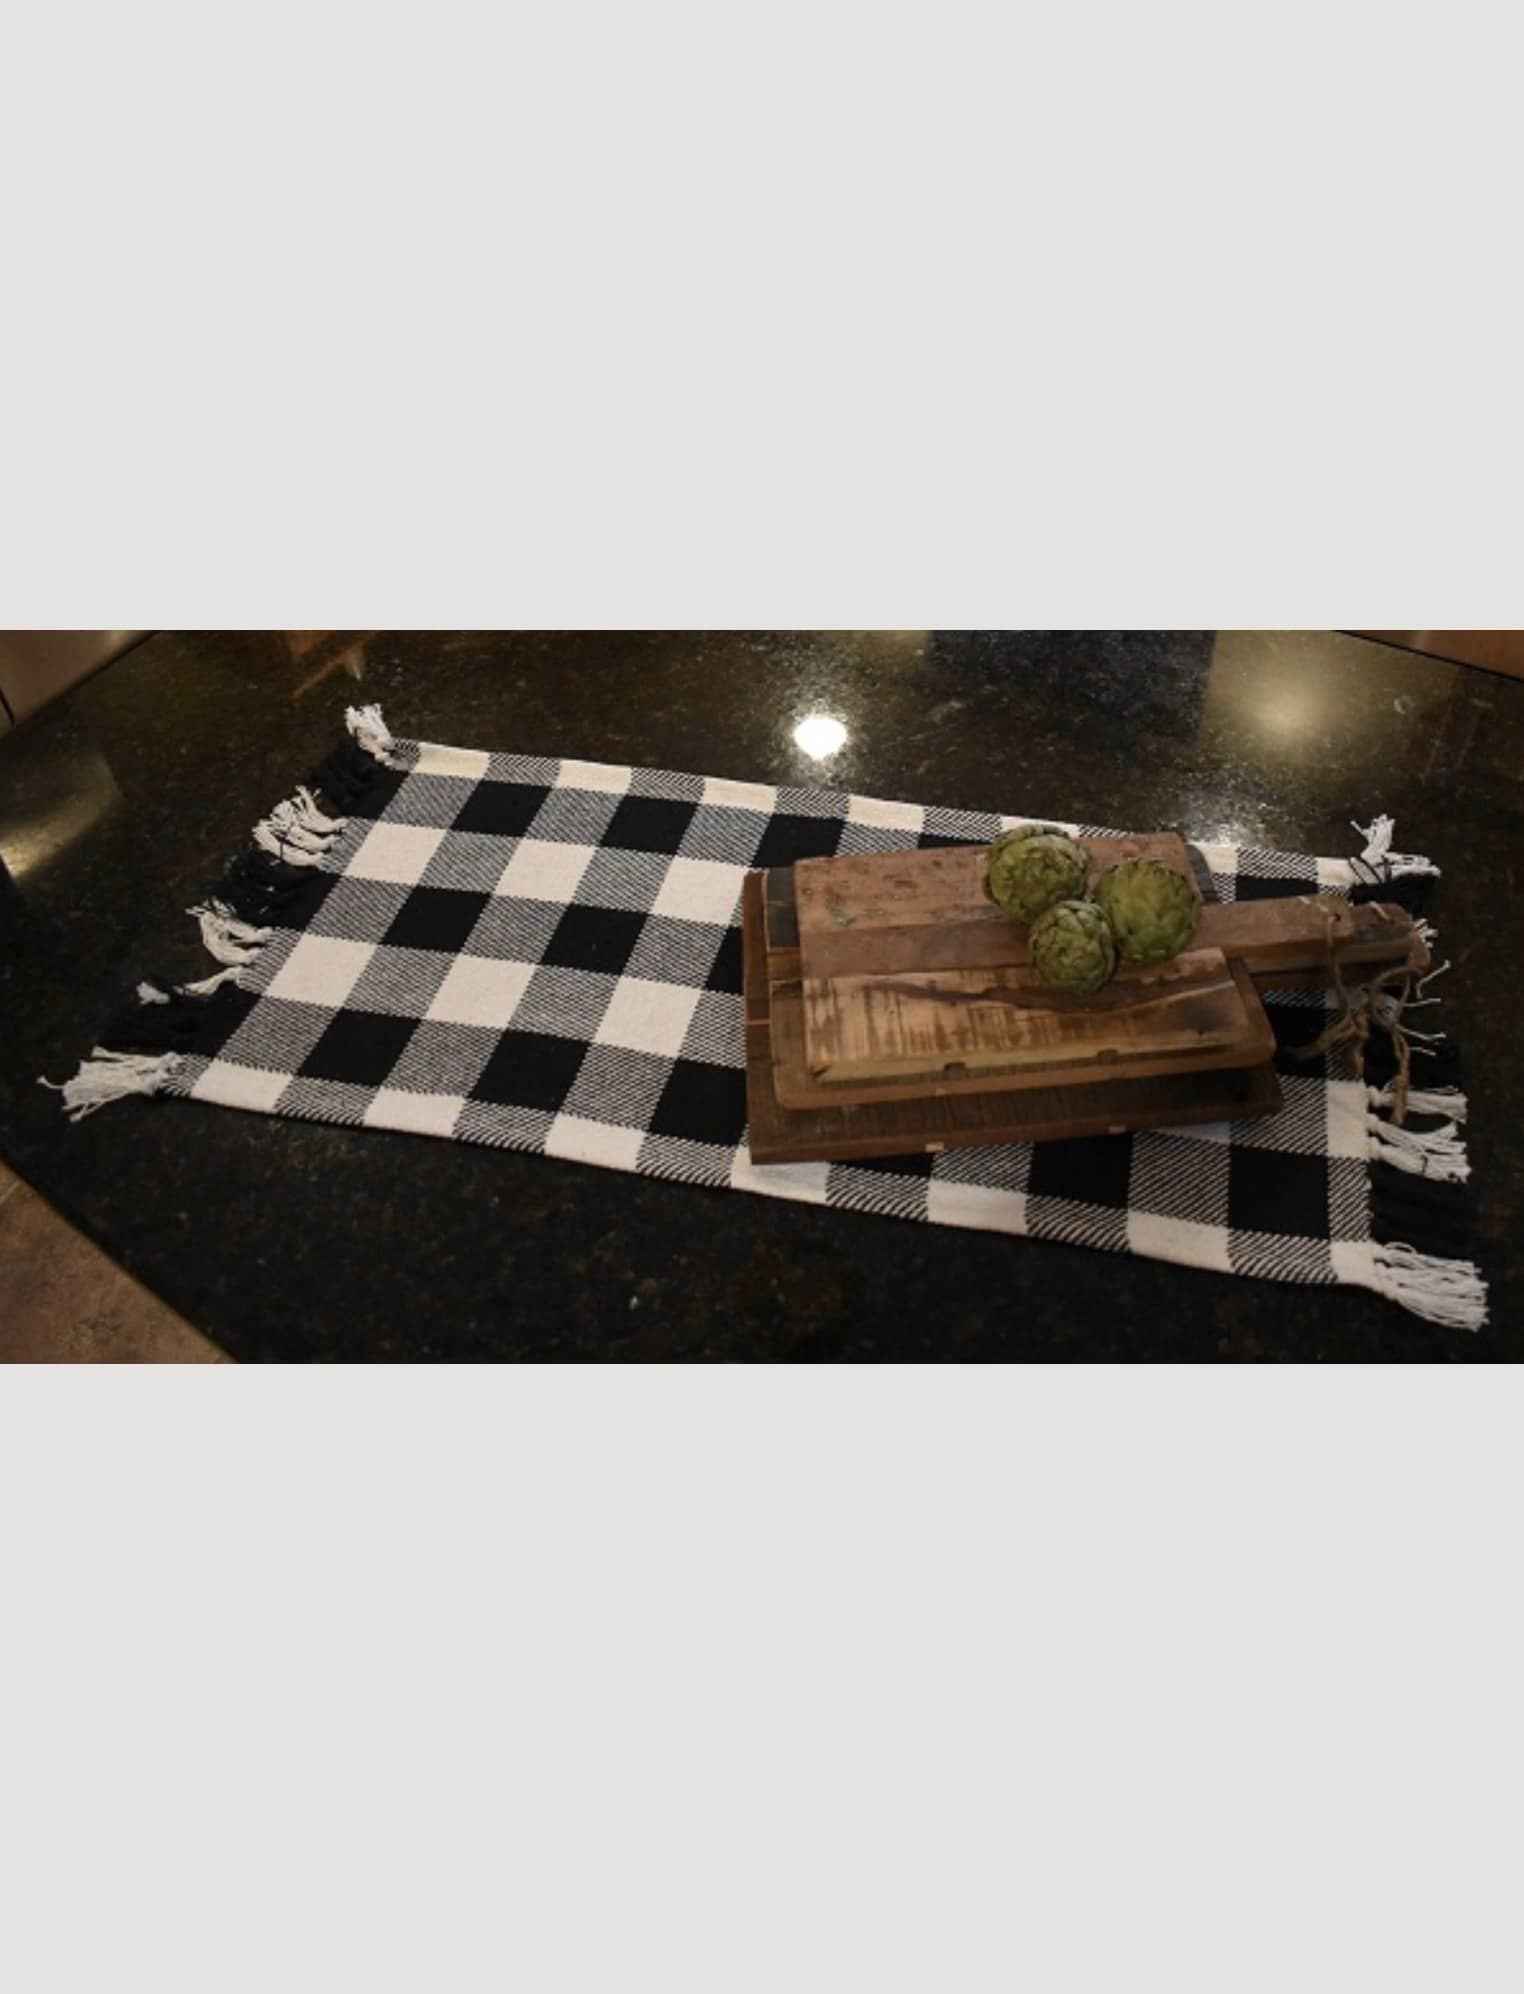 Nana's Farmhouse Buffalo Check Square White/Black - 34""